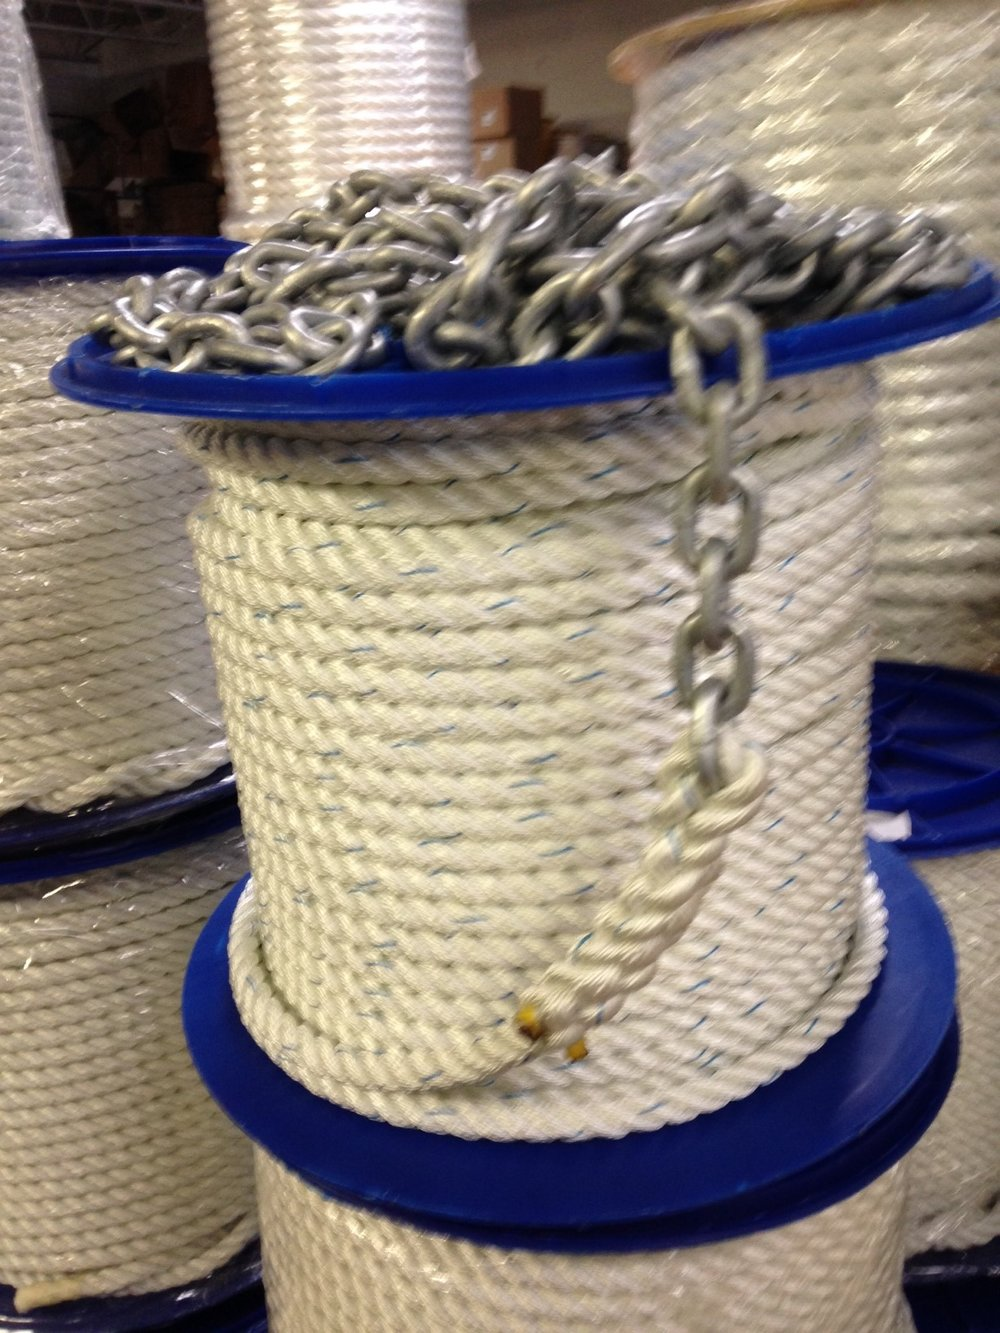 Nylon, double braided, twine, mooring line, mason line, poly, polyester, poly pro, twist and braid, long lengths, multiple sizes, factor direct, tree, dock, boat, ship, anchor, windlass, braid, custom, wire, chain, rigging, fitting, stainless, cable, drop ship